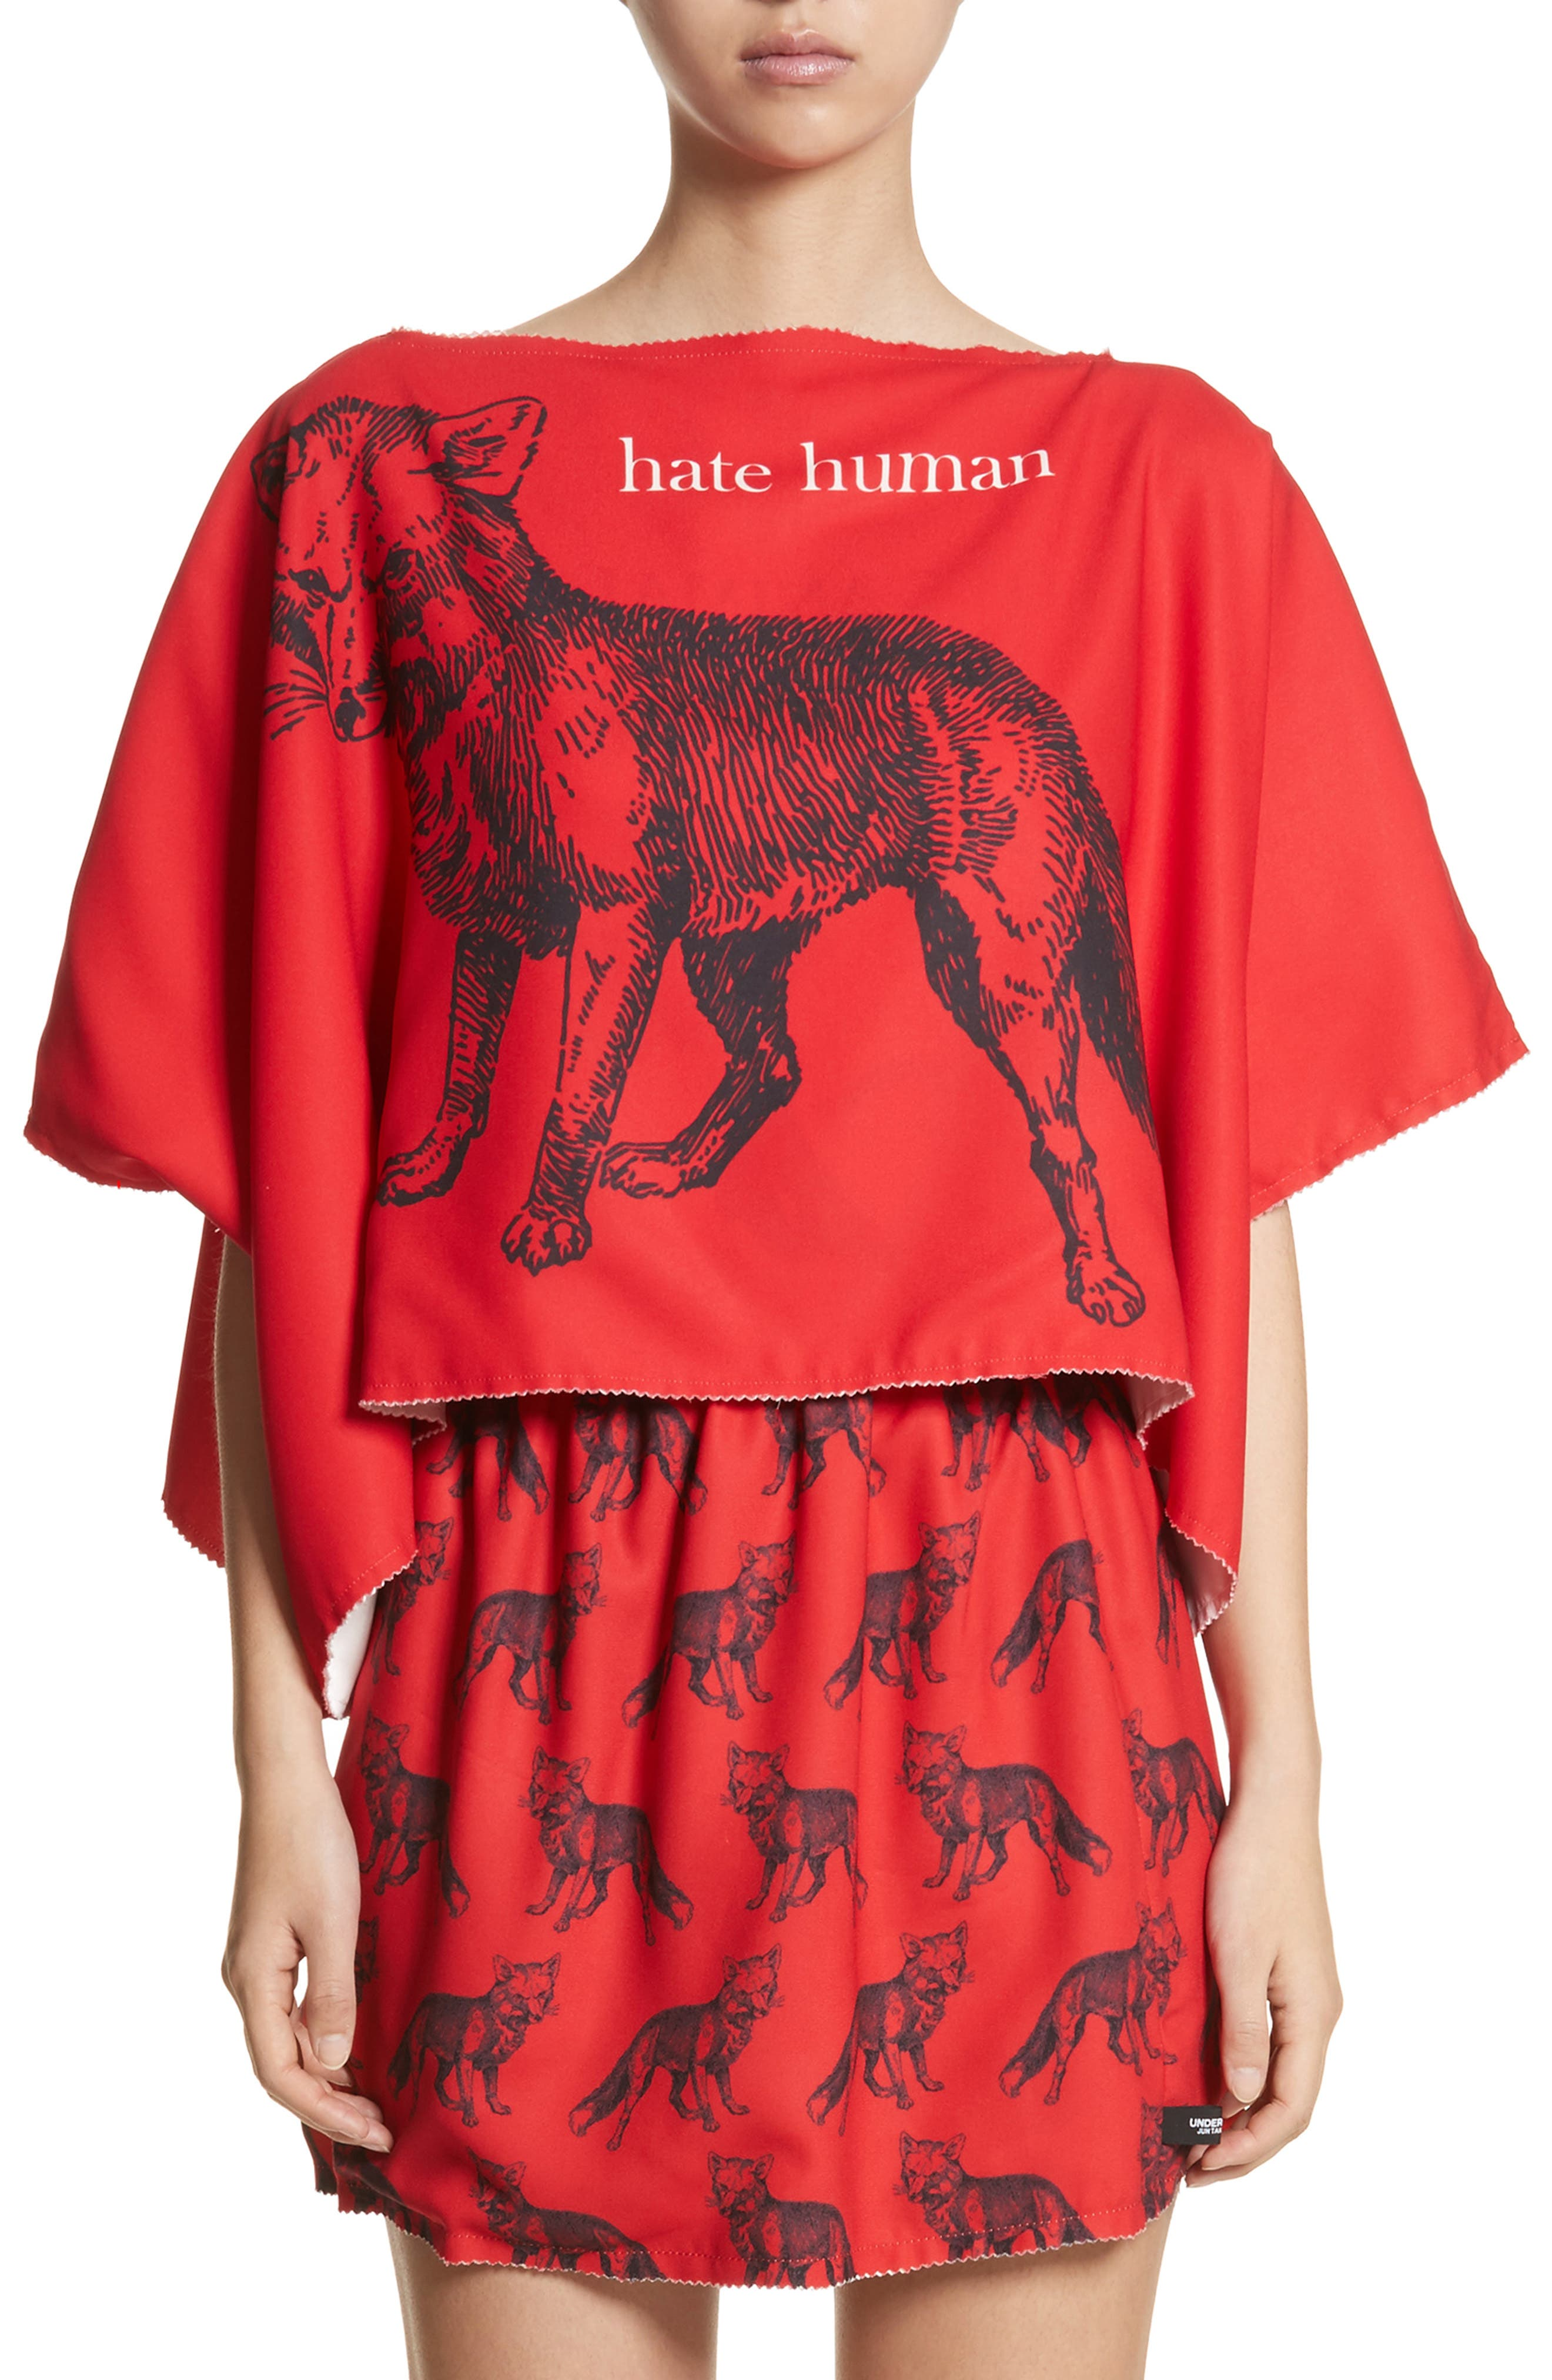 Undercover Hate Human/Love Animal Reversible Top